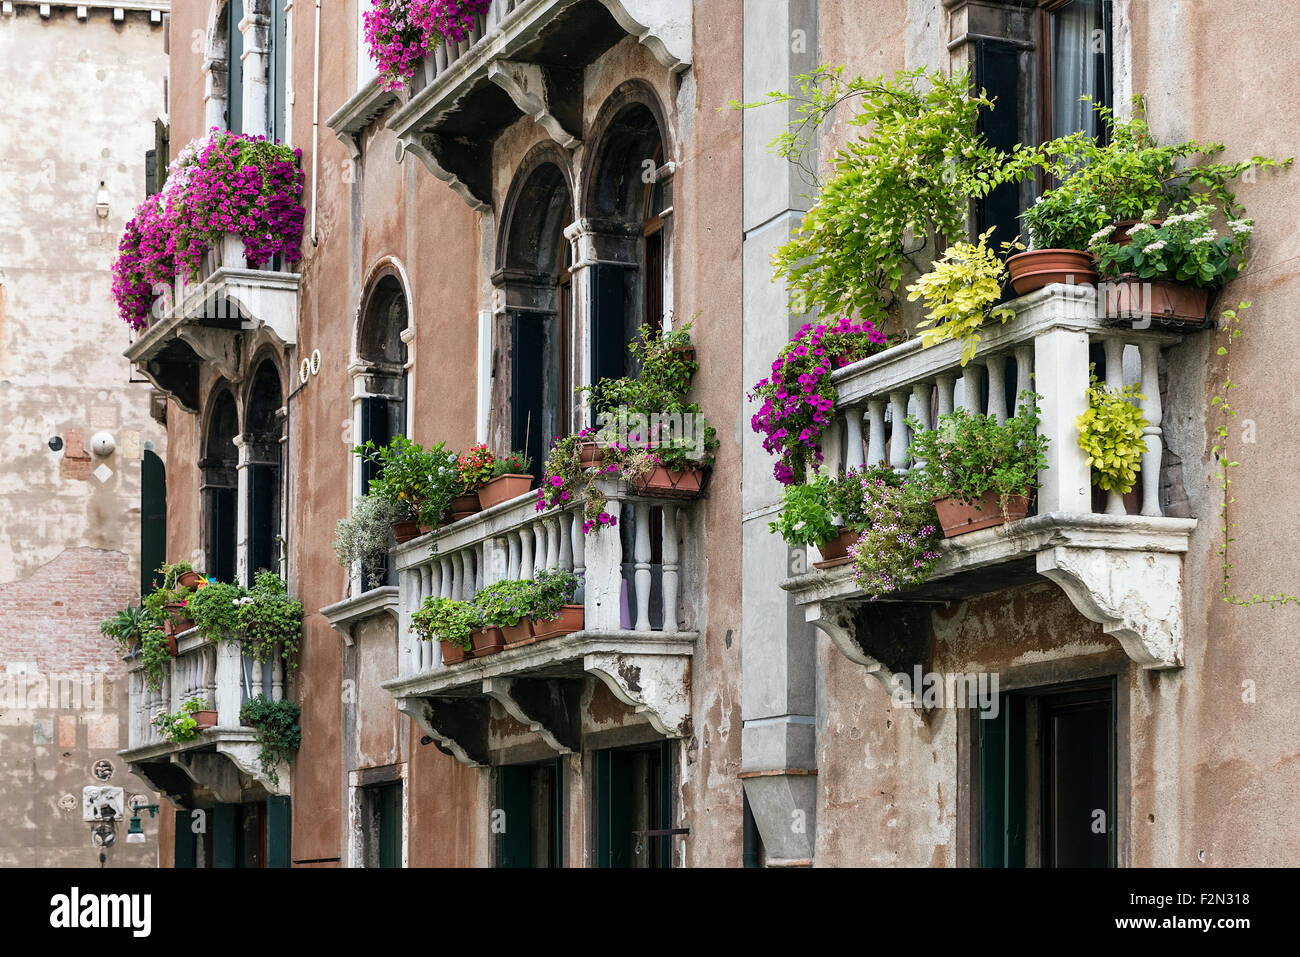 Flowers and plants adorn the Venitian balconies, Venice, Italy - Stock Image